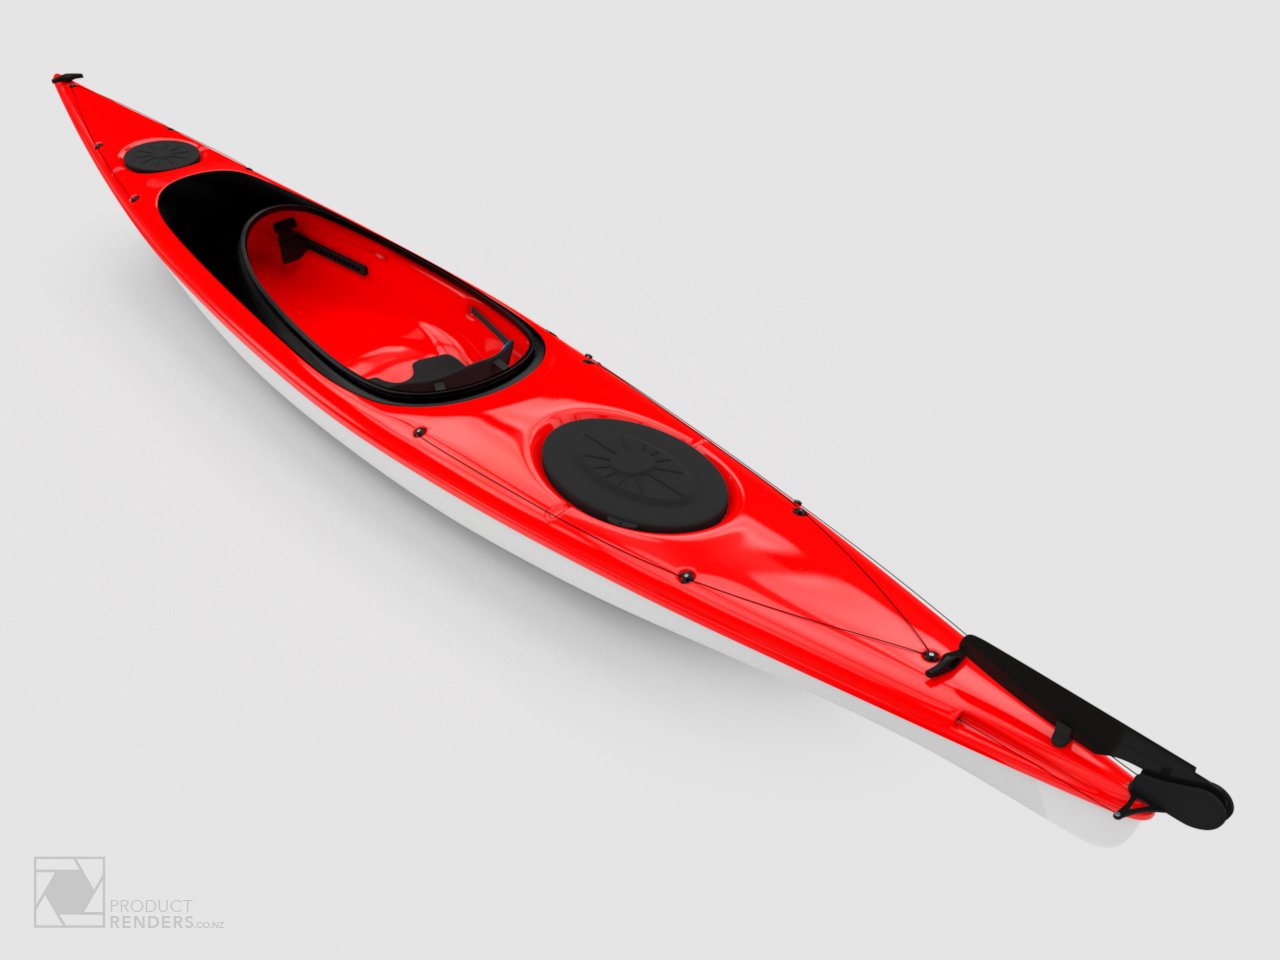 3D render of a red Star Kayak